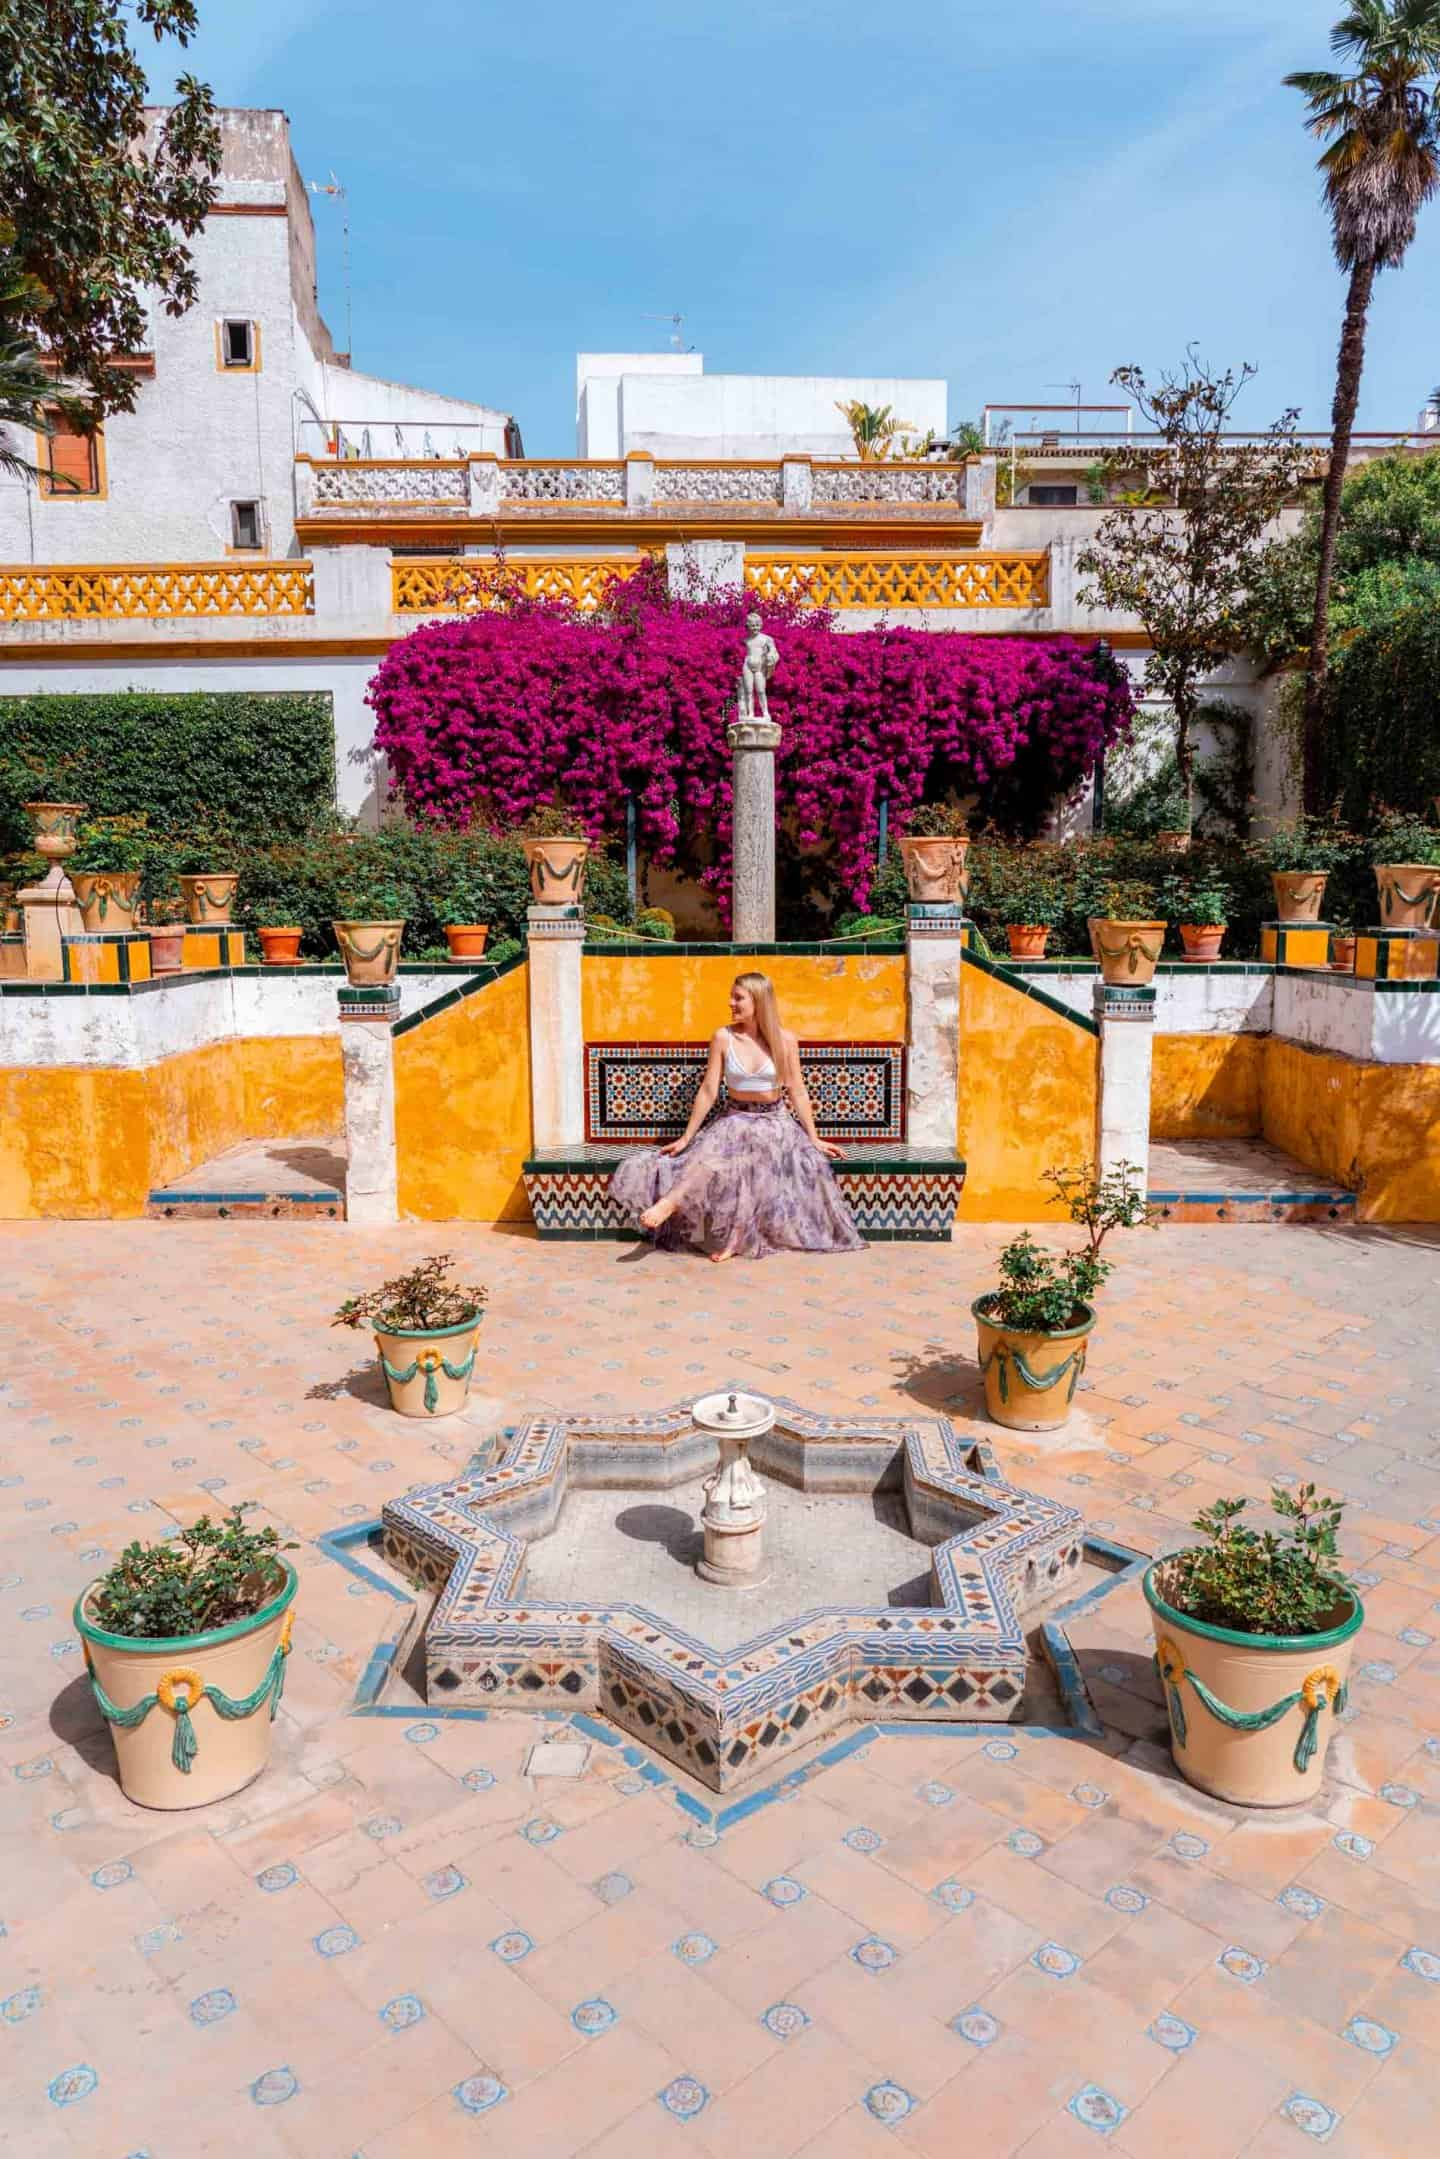 Girl in a purple skirt sat in the colourful garden of Casa de Pilatos Seville Spain